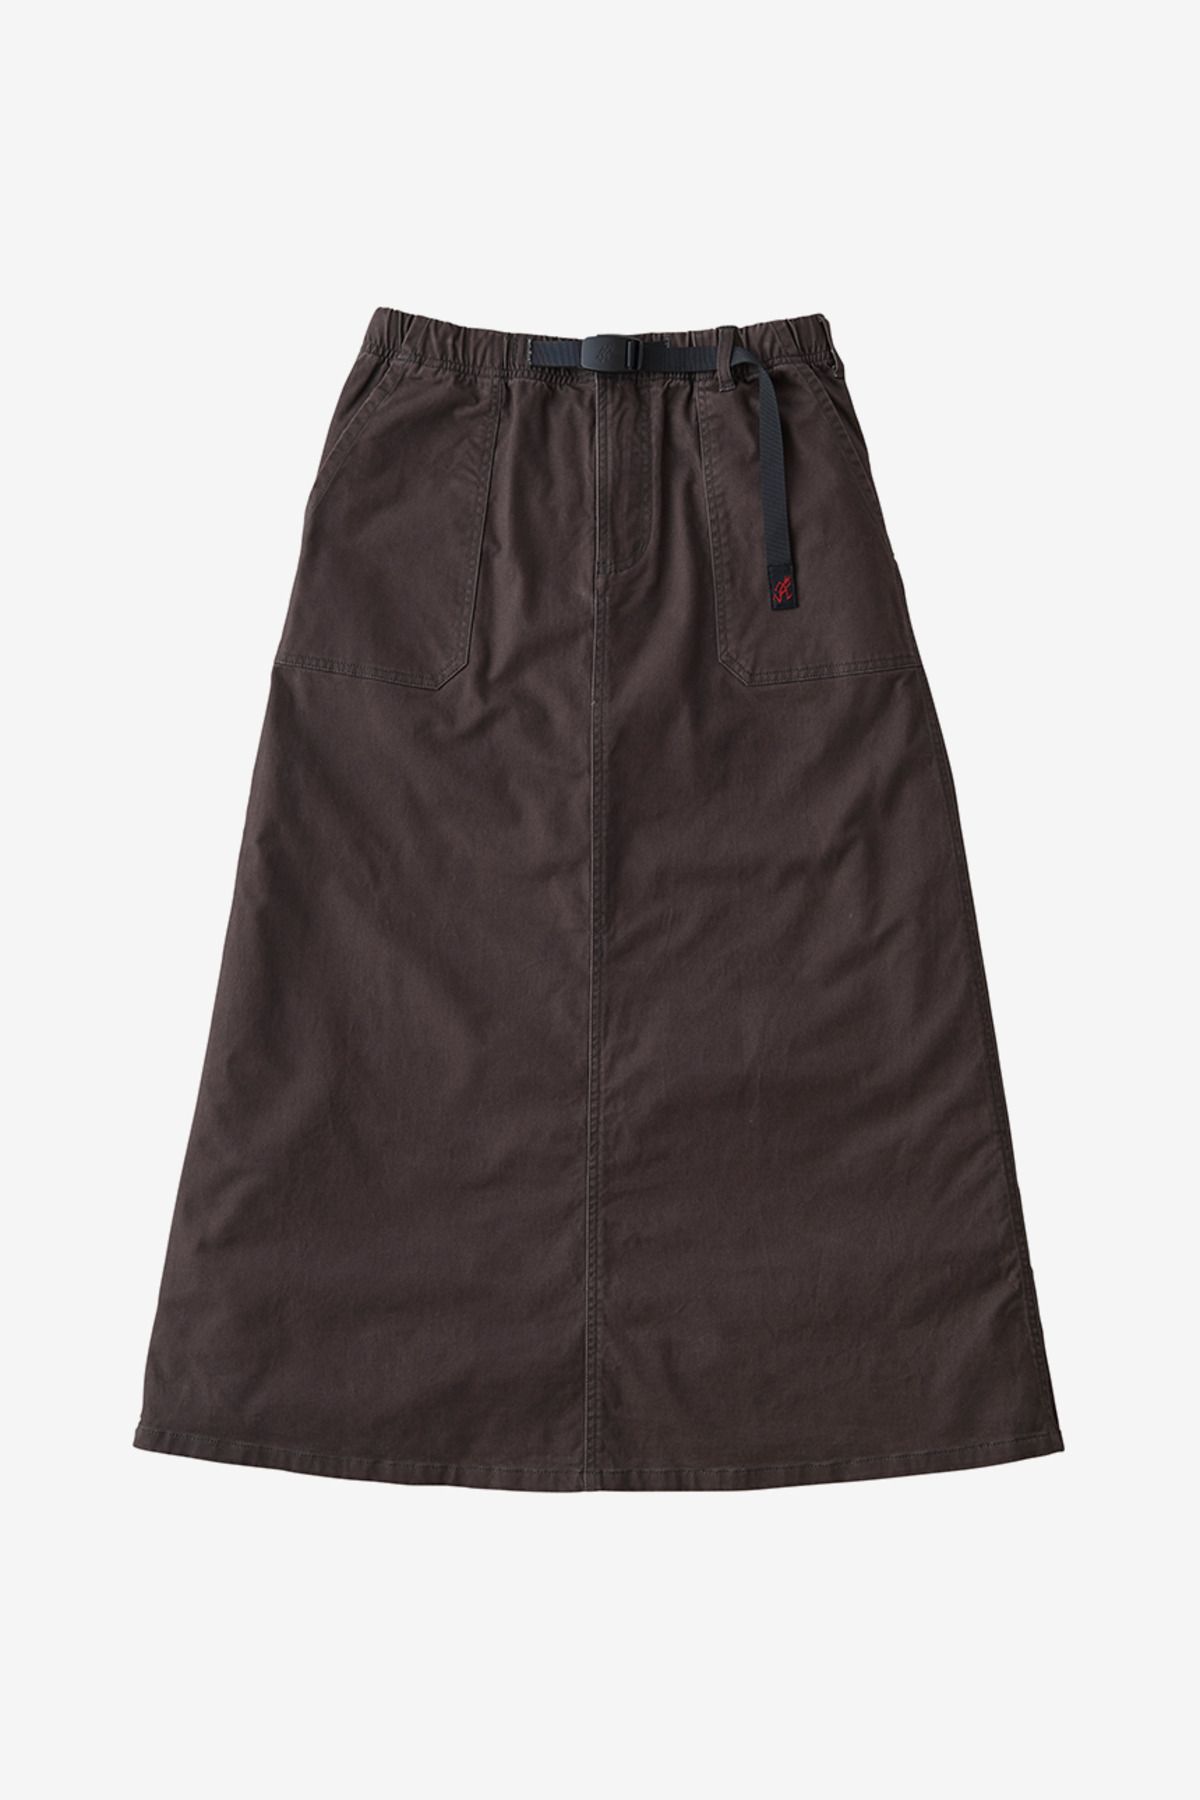 BAKER SKIRT DARK BROWN